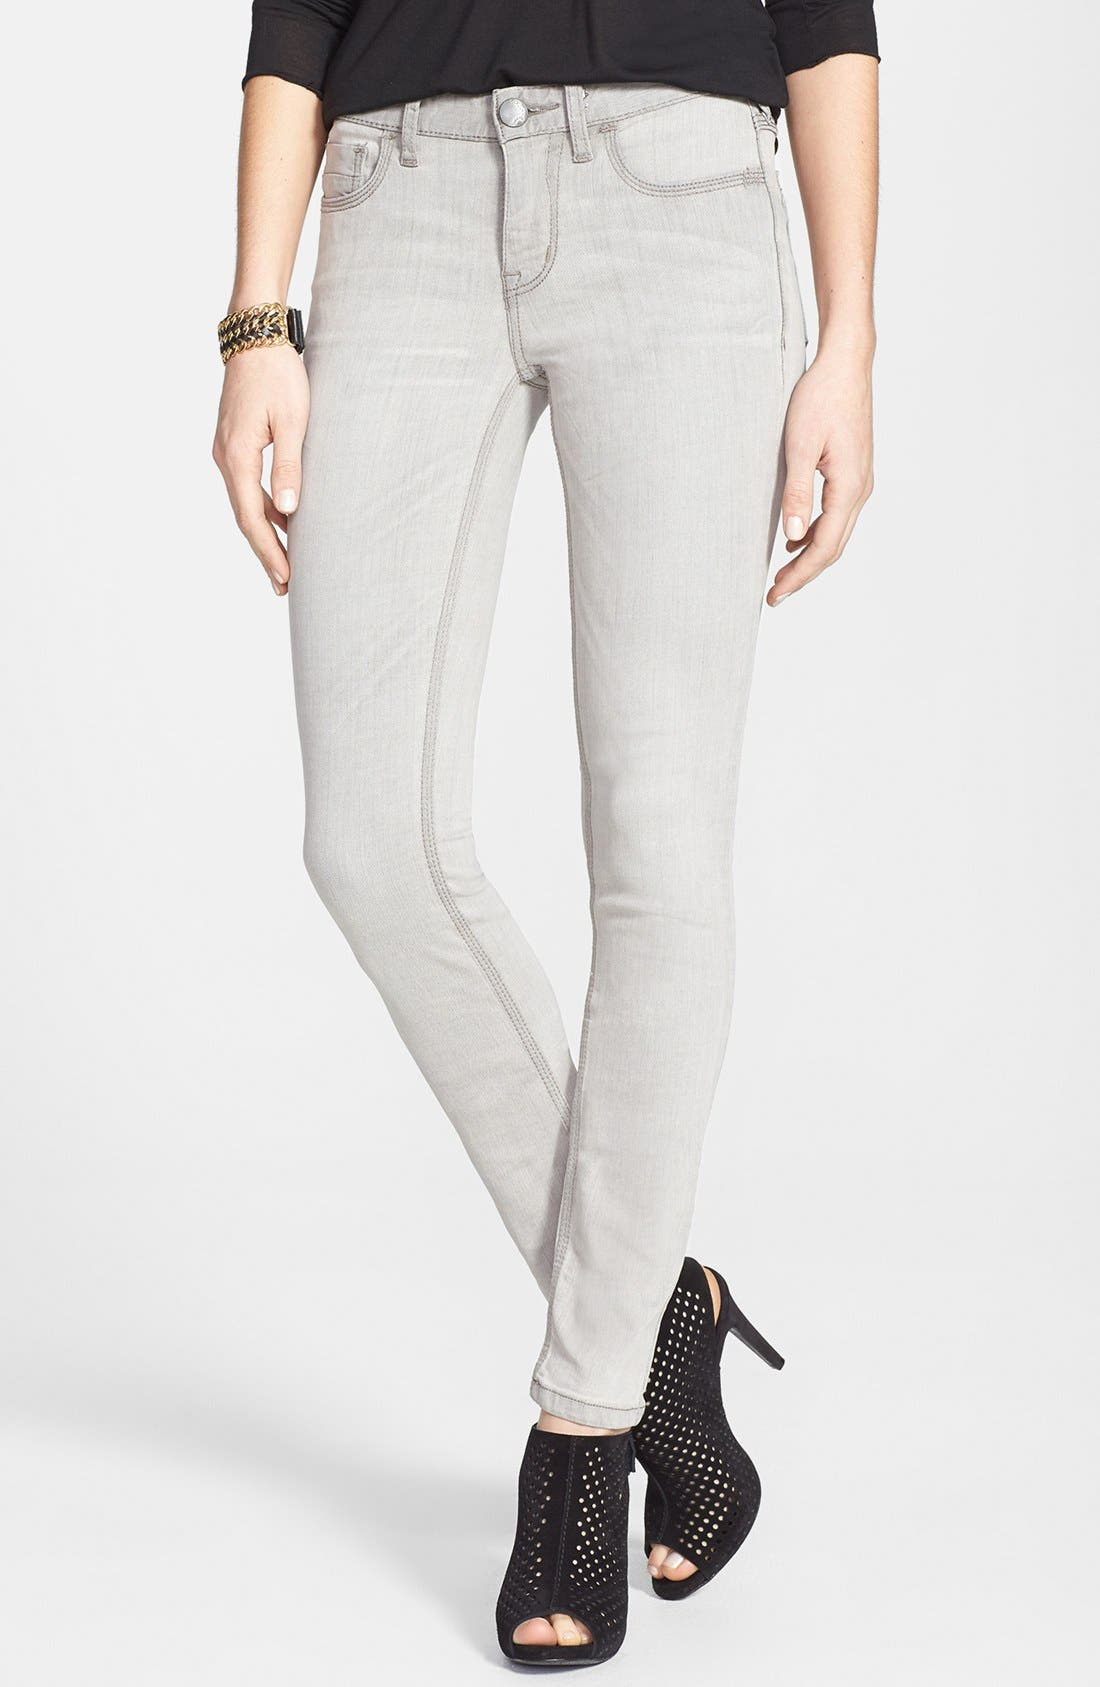 Alternate Image 1 Selected - Free People Stretch Skinny Jeans (Cloudy Grey)